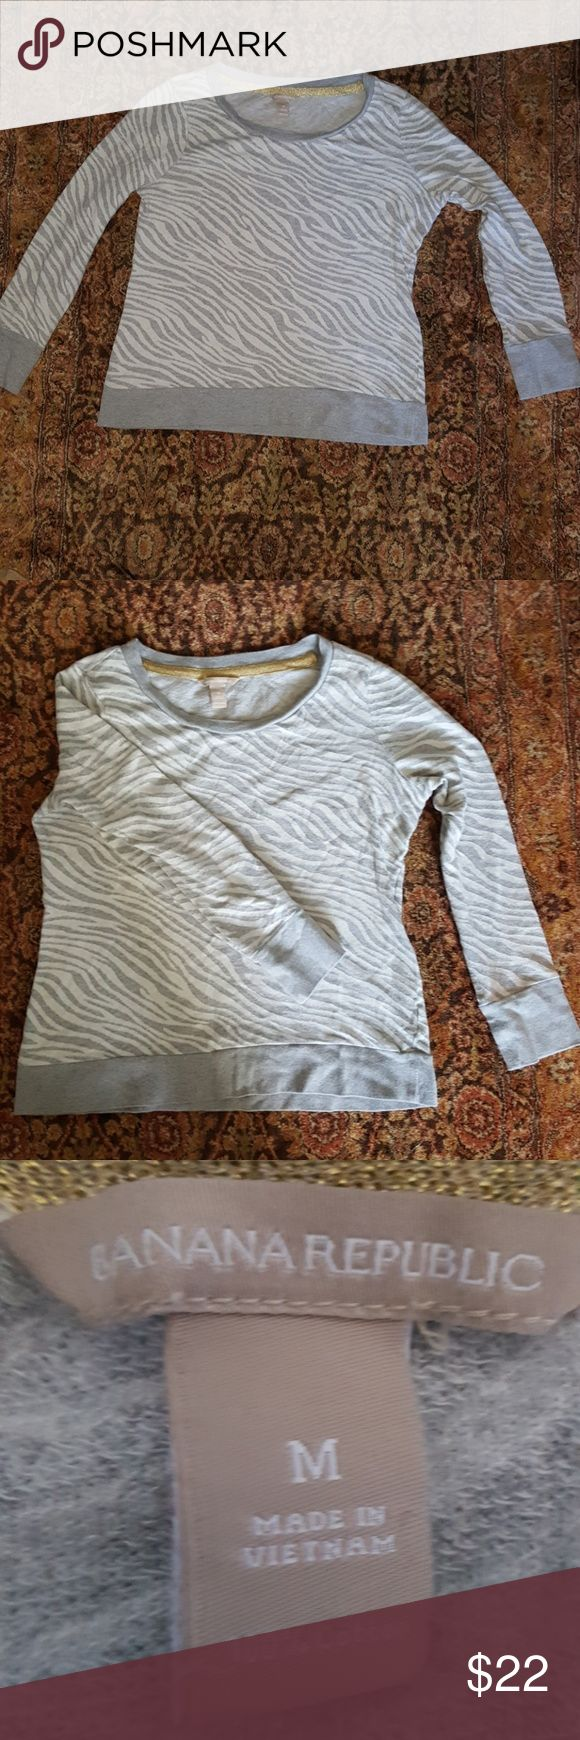 Banana Republic sweater Super soft 100% cotton gray and white zebra stripe pattern sweater by Banana Republic.  It's in really good condition and very comfortable. Banana Republic Tops Tees - Long Sleeve